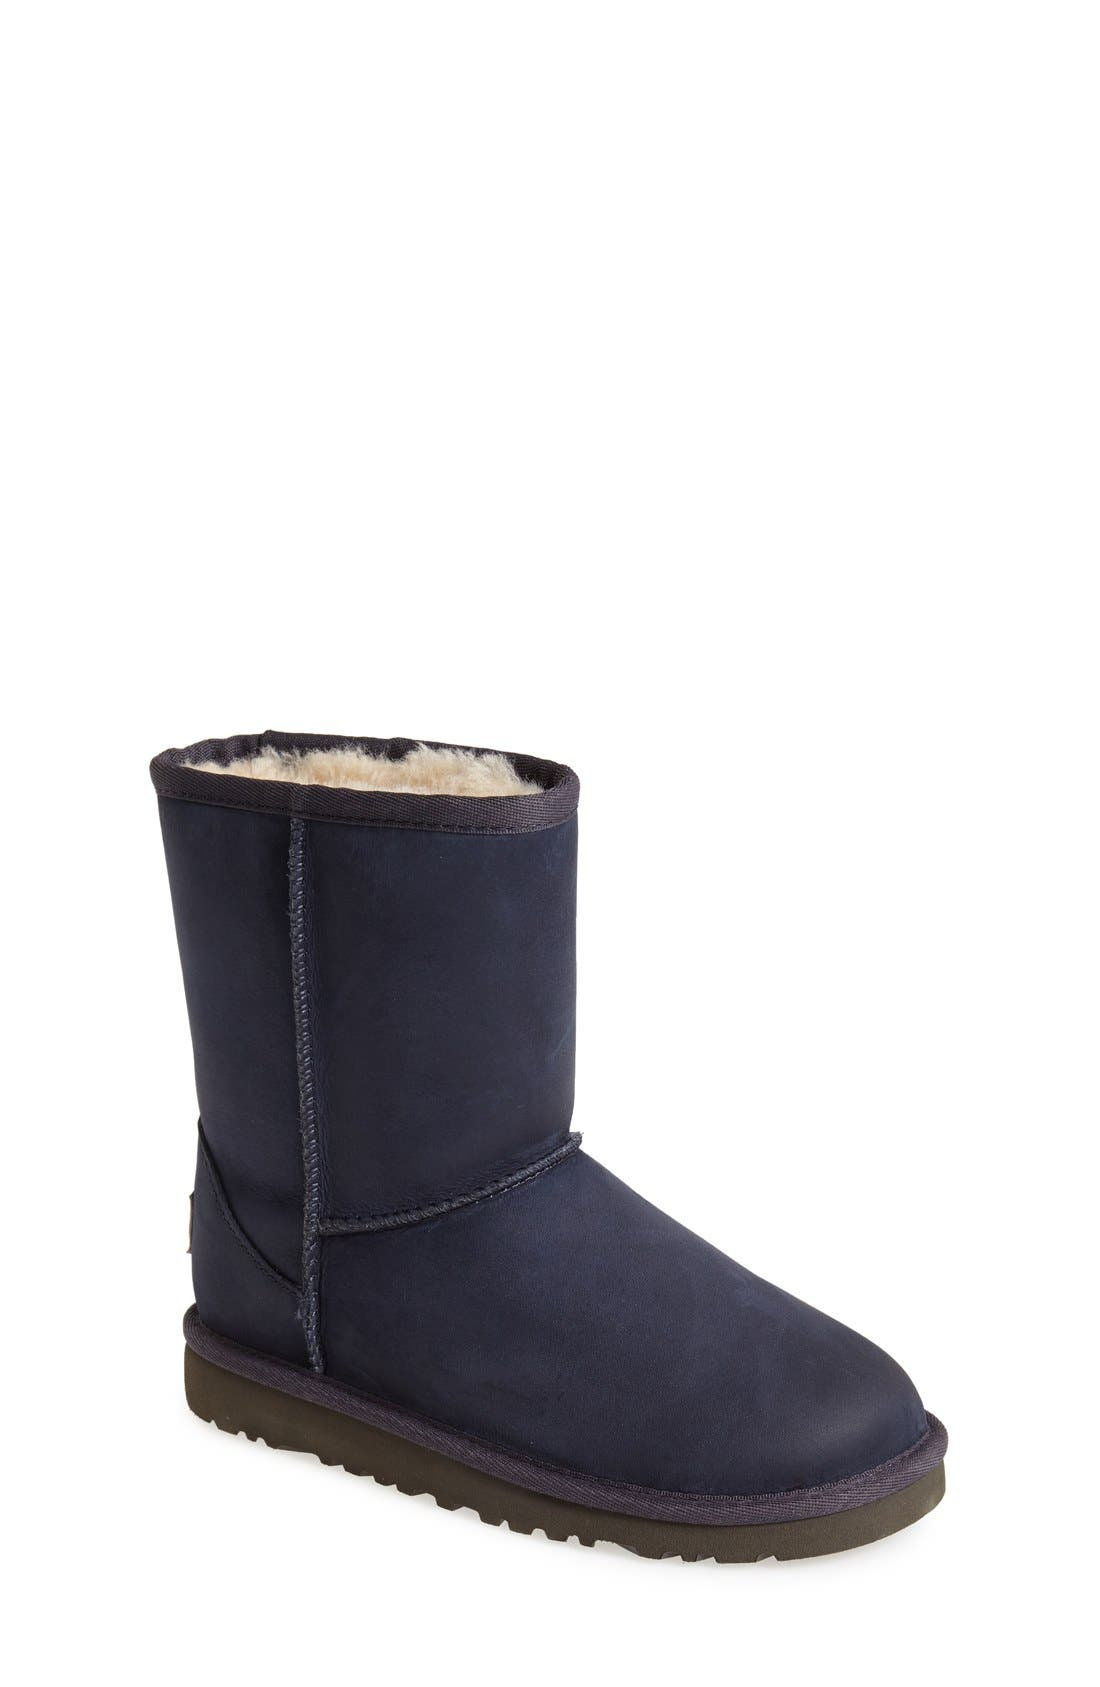 Main Image - UGG® Classic Short Water Resistant Leather Boot (Little Kid & Big Kid)